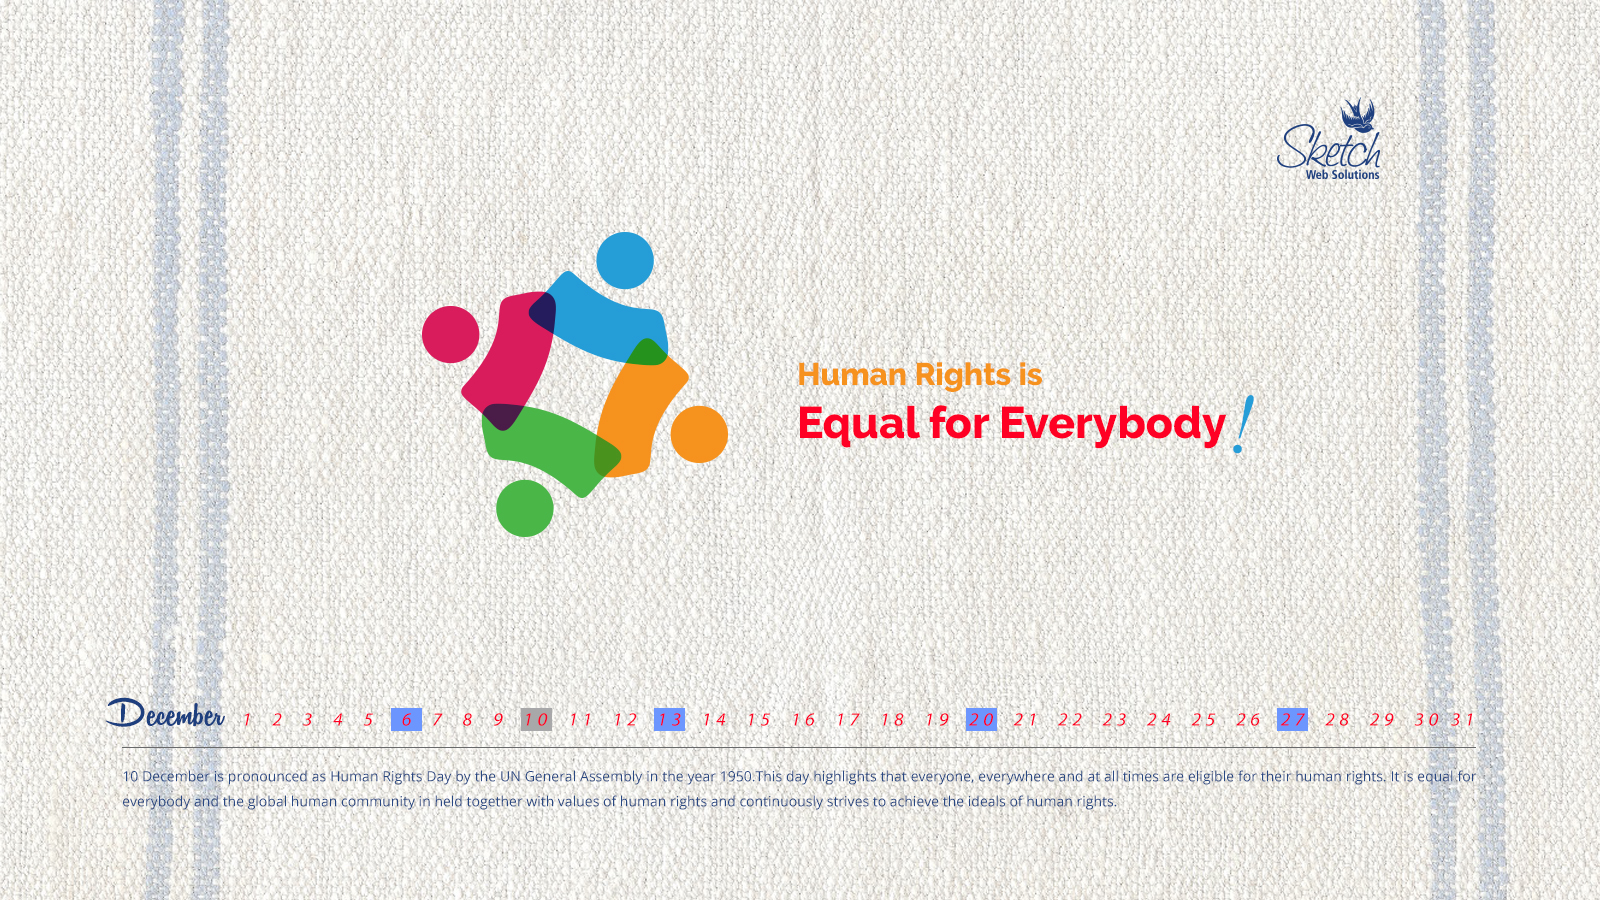 Equal for Everybody